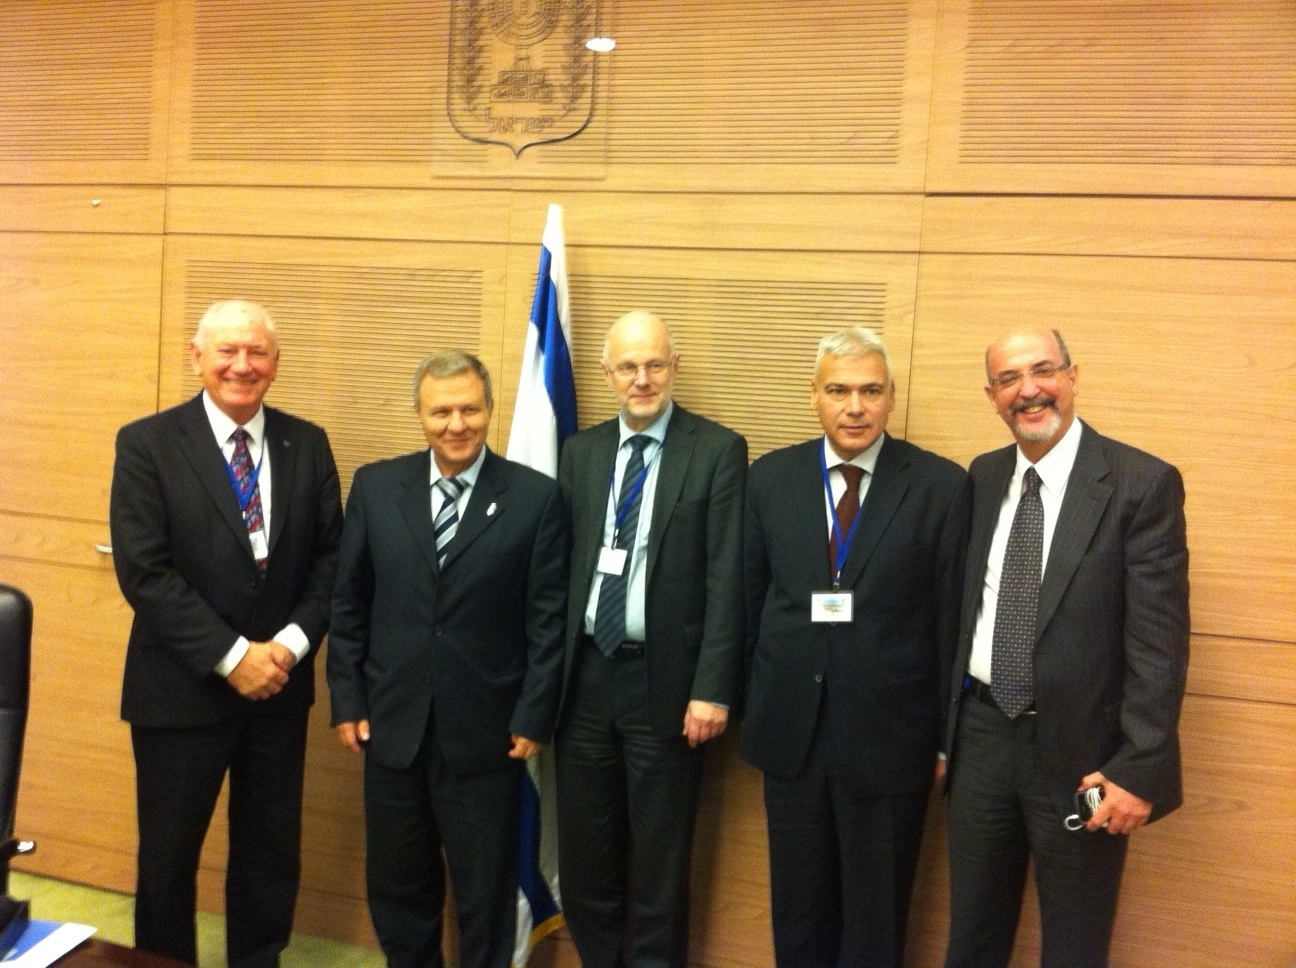 From left: Sandy Boyle, Meir Sheetrit, Staffan Nilsson, Dimitris Dimitriadis, Yehuda TALMON